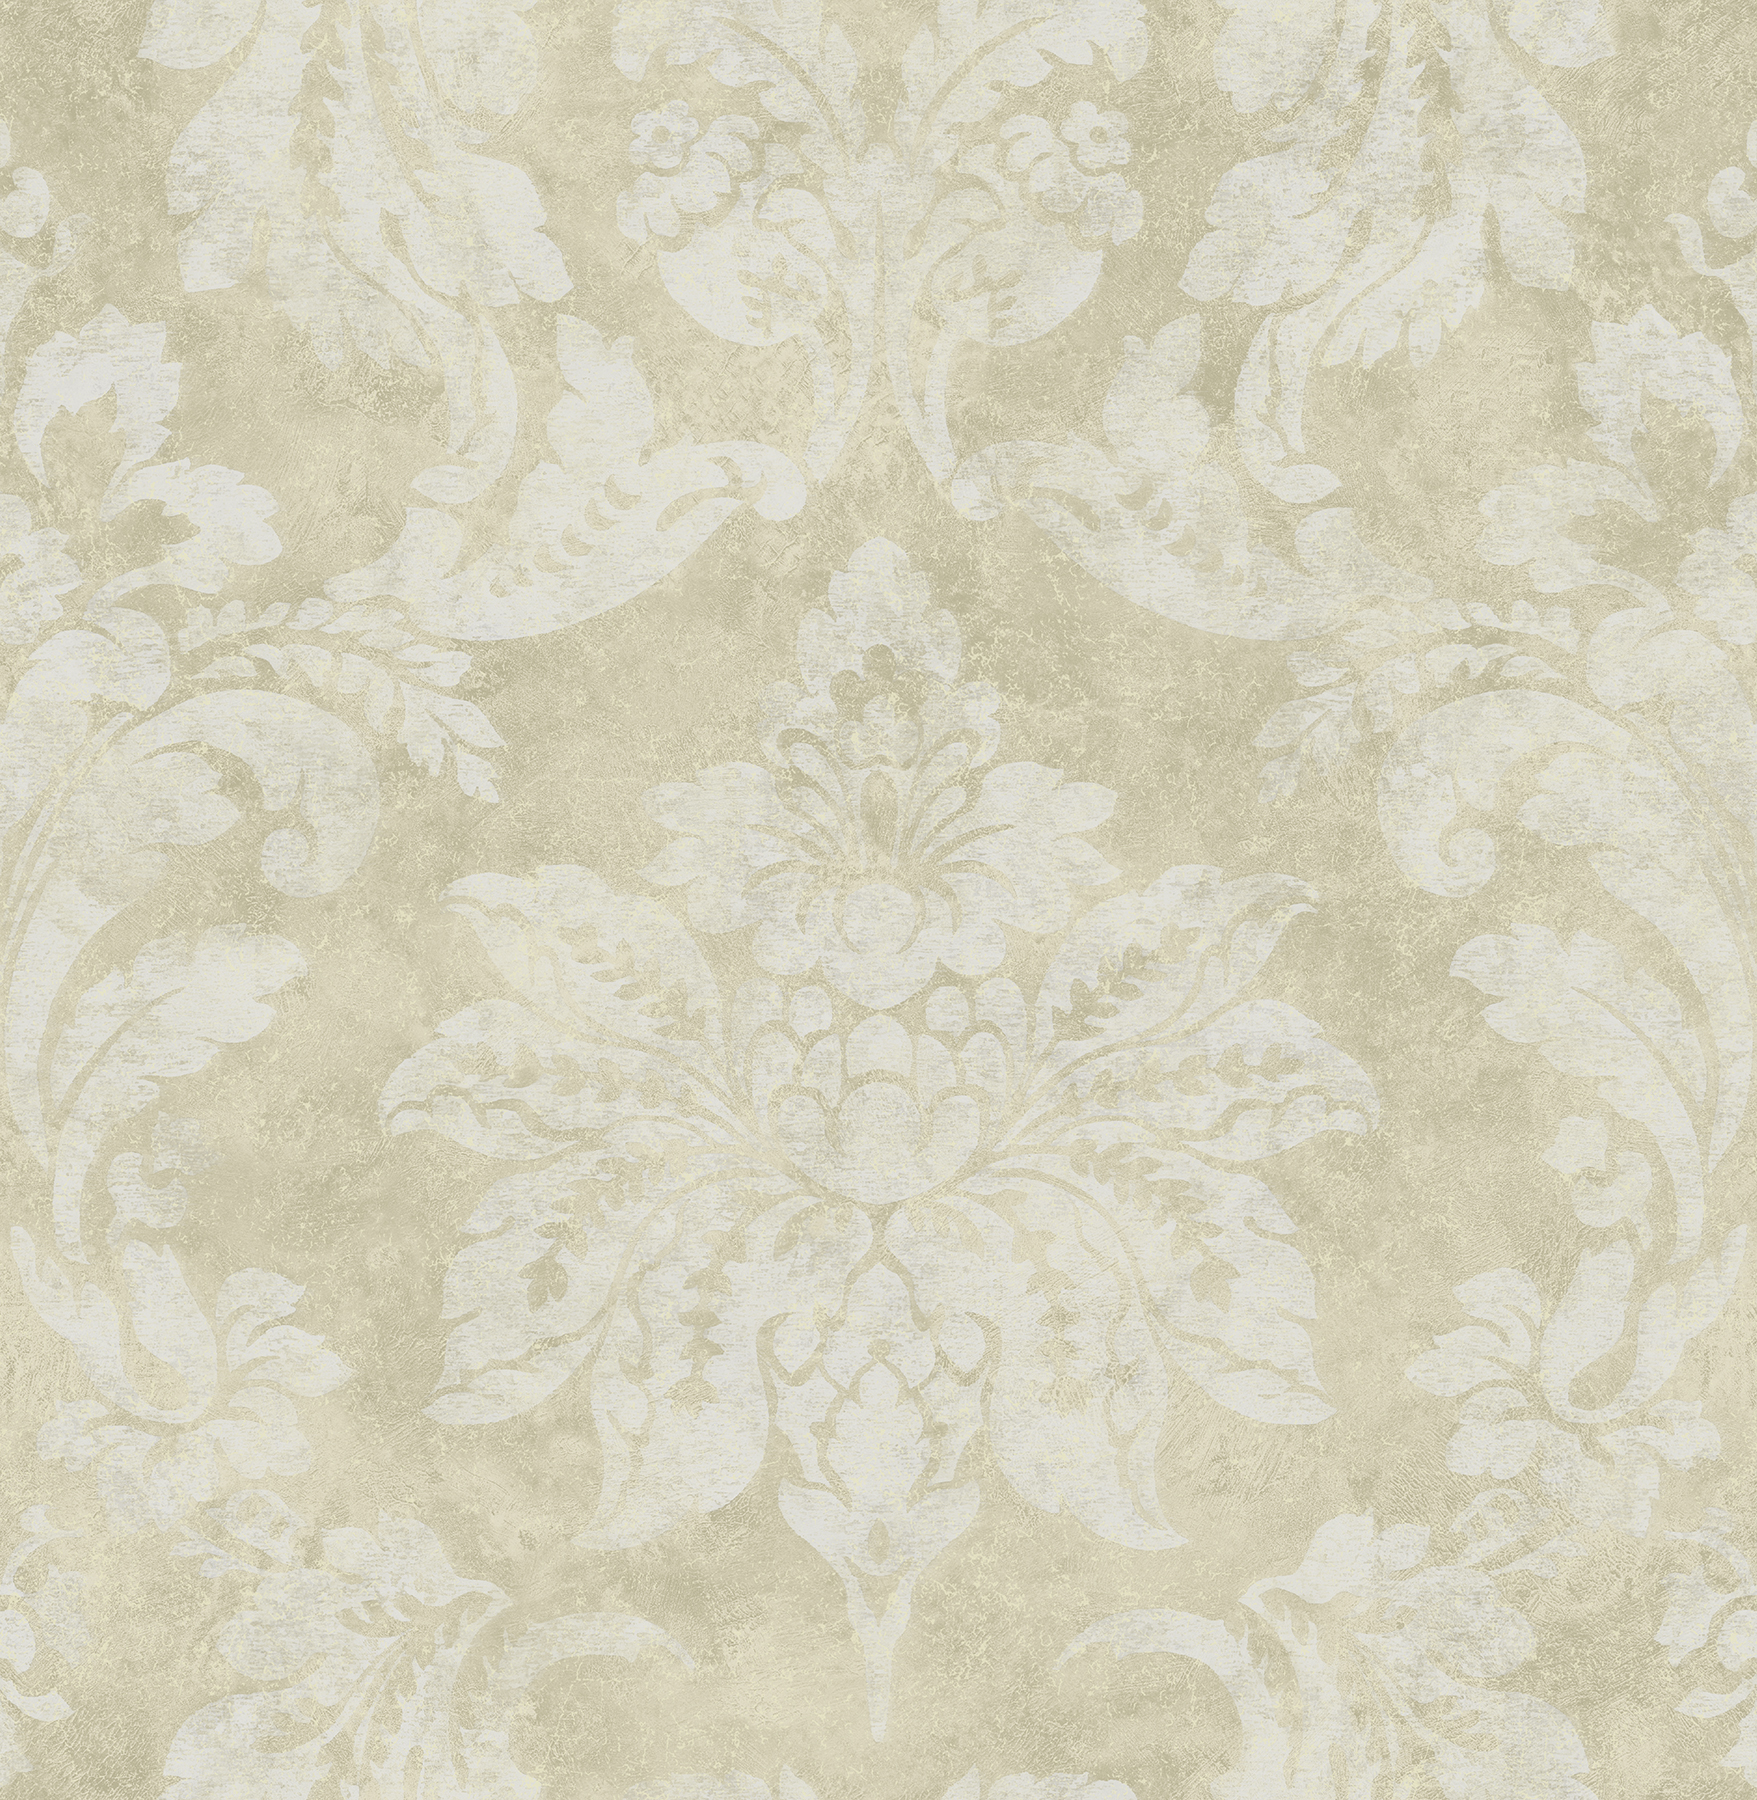 Picture of Astor Gold Damask Wallpaper